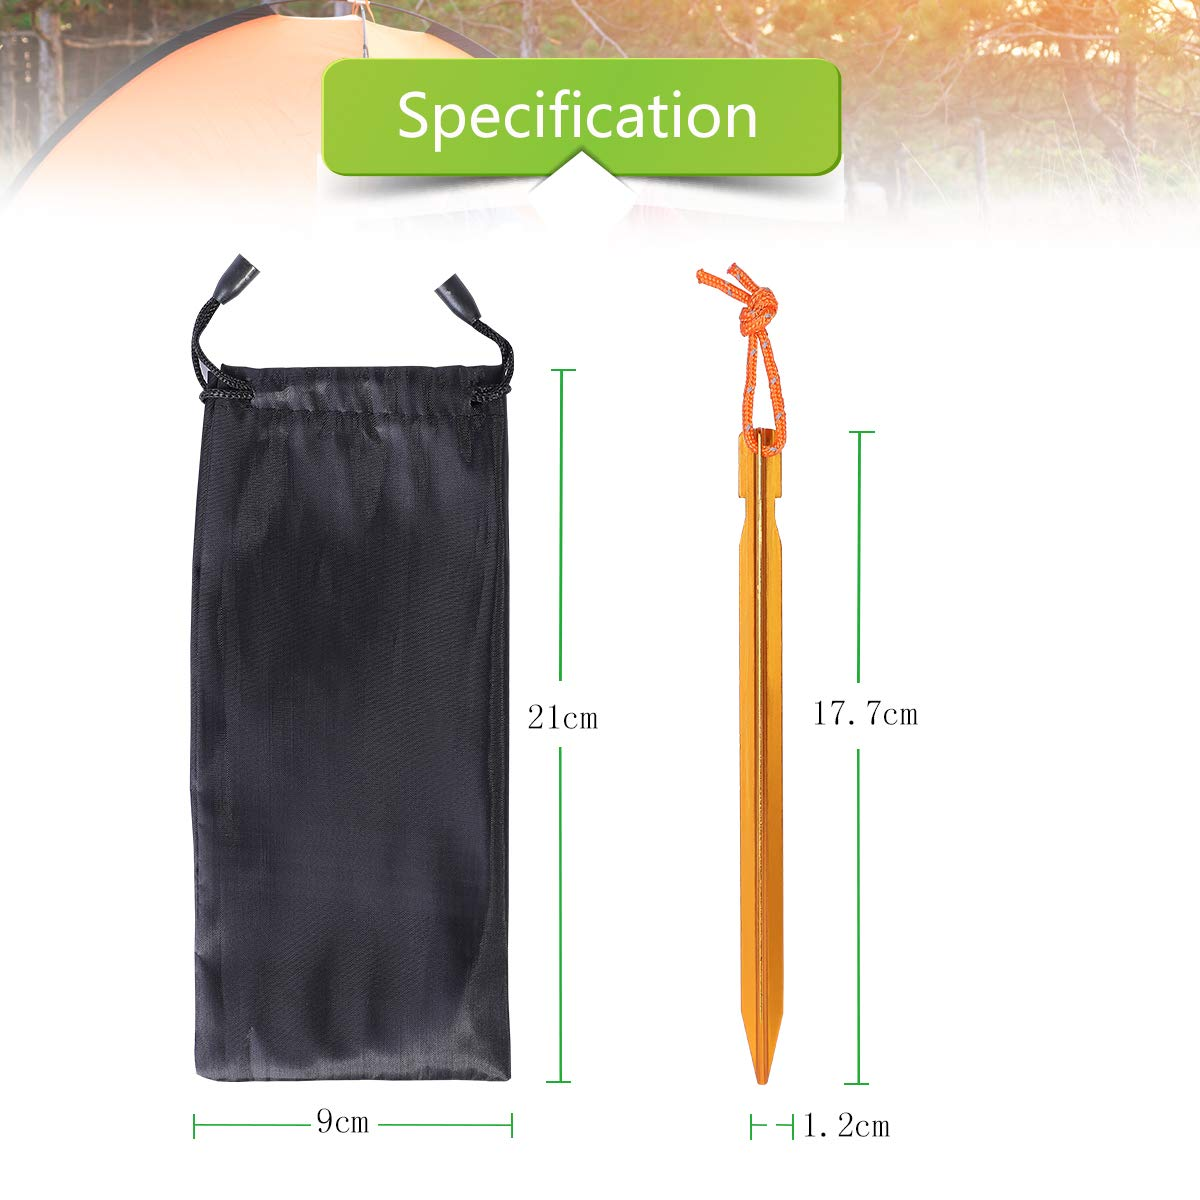 Tent Stakes,LANMU Camping Tent Pegs Stakes,Aluminum Alloy Tent Pegs with Reflective Rope,Outdoor Heavy Duty Peg Stake Kit for Camping,Rain Tarps,Beach,Hiking,Mountaineering 10 Pieces